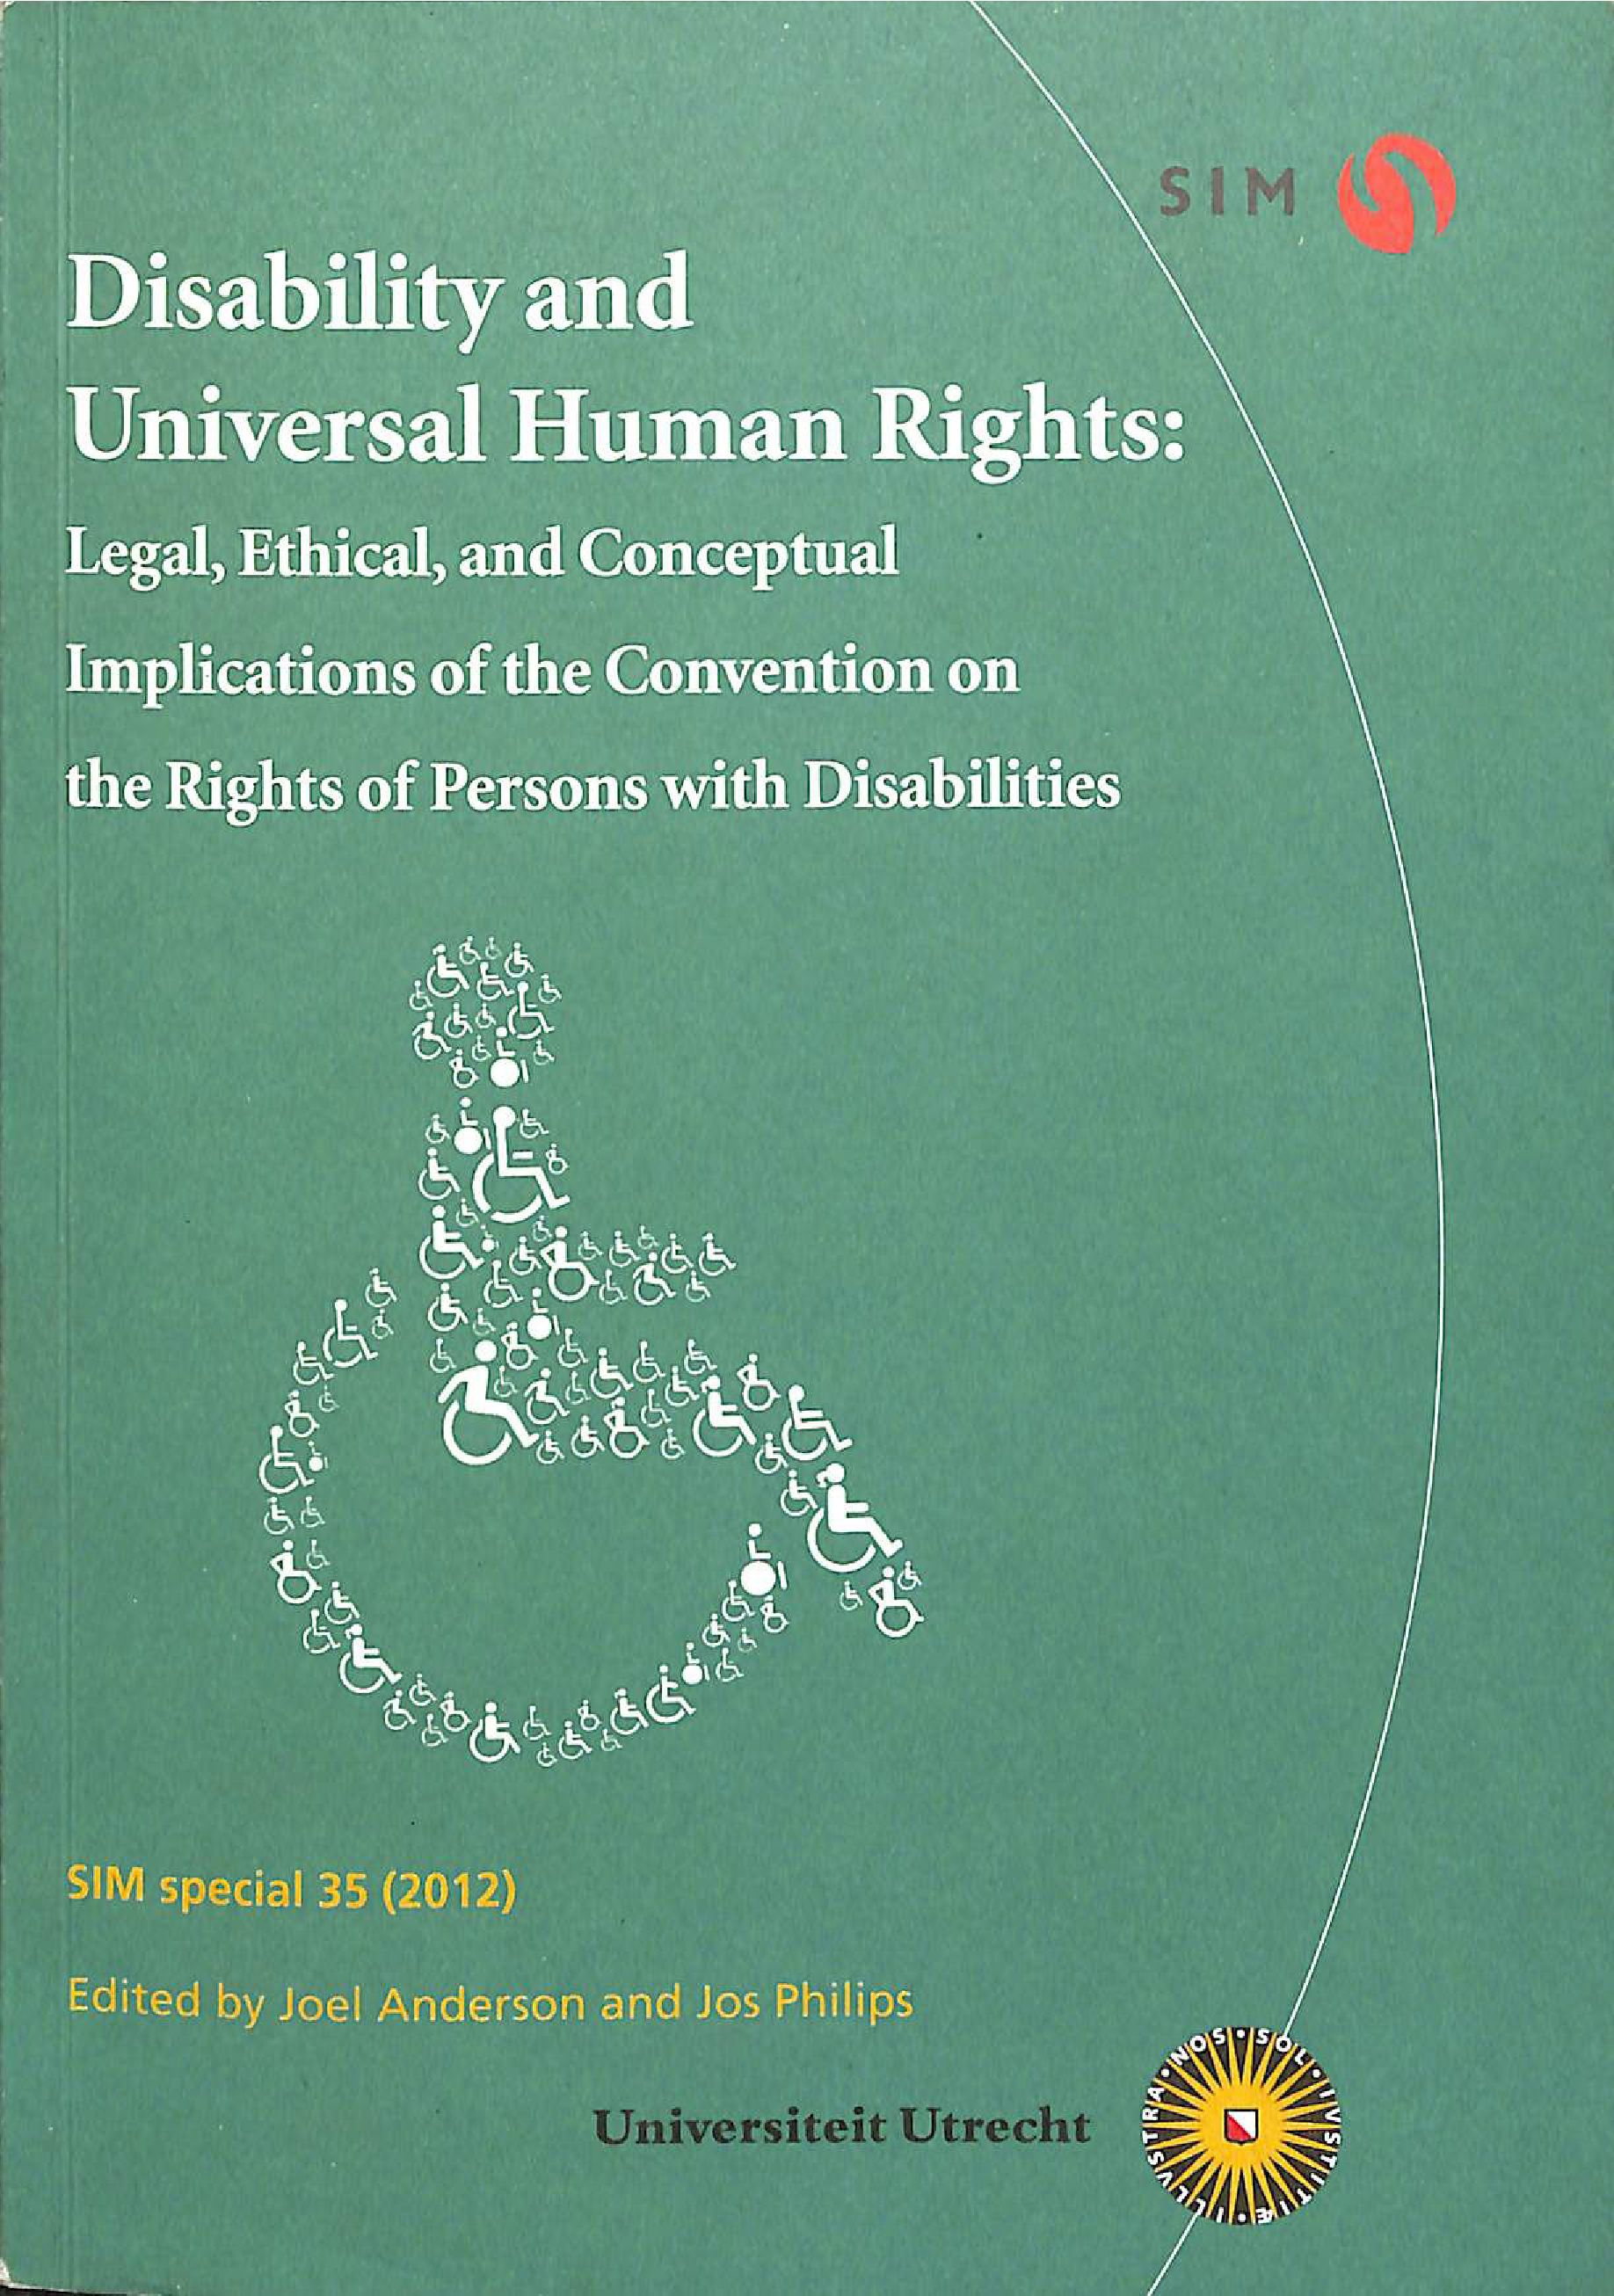 Disability Human Right: Legal, Ethical, and Conceptual Implications of the Convention on the Rights of Persons with Disabilities